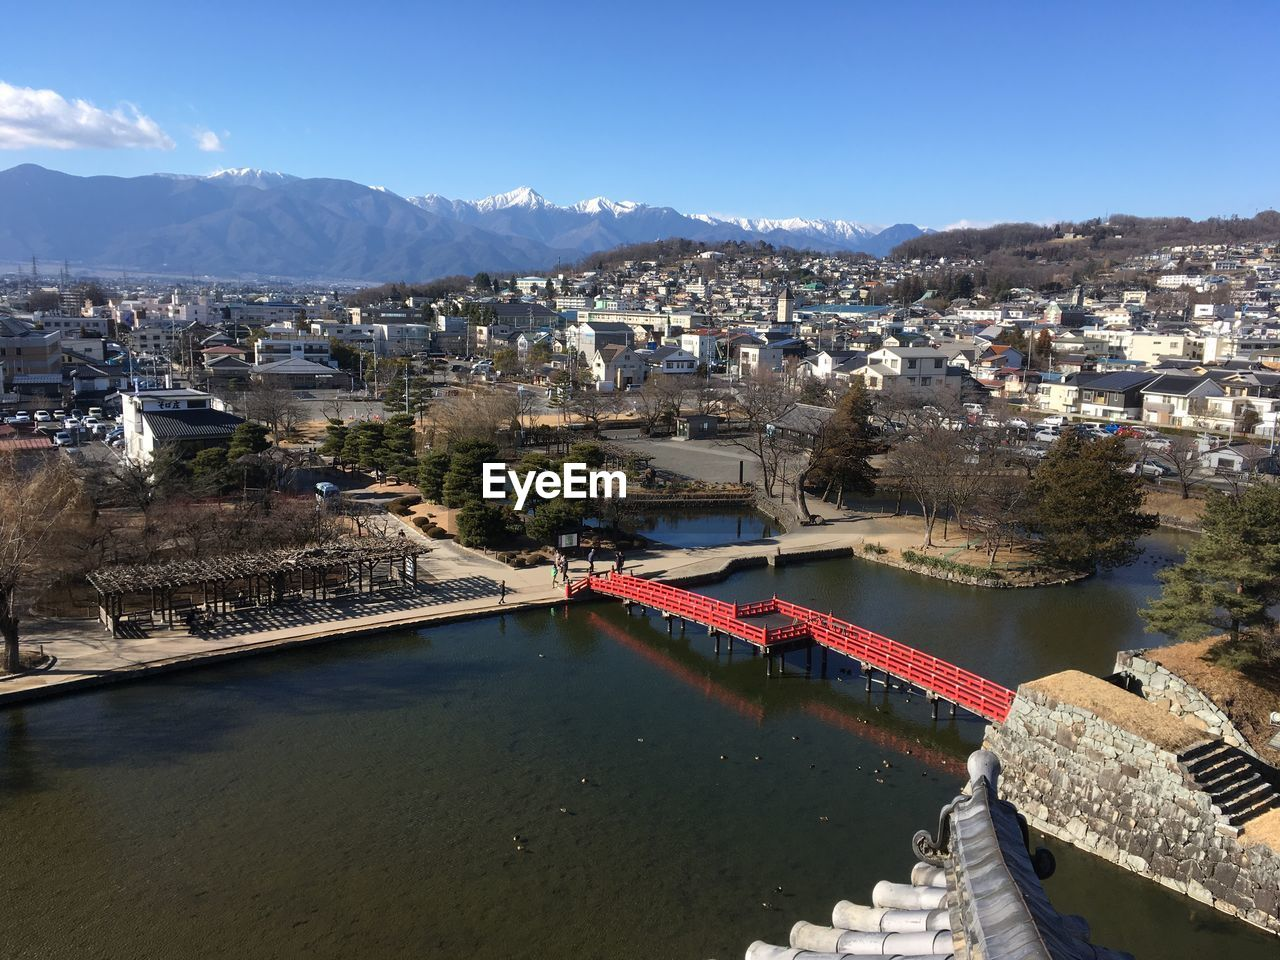 HIGH ANGLE VIEW OF RIVER AND TOWN AGAINST SKY